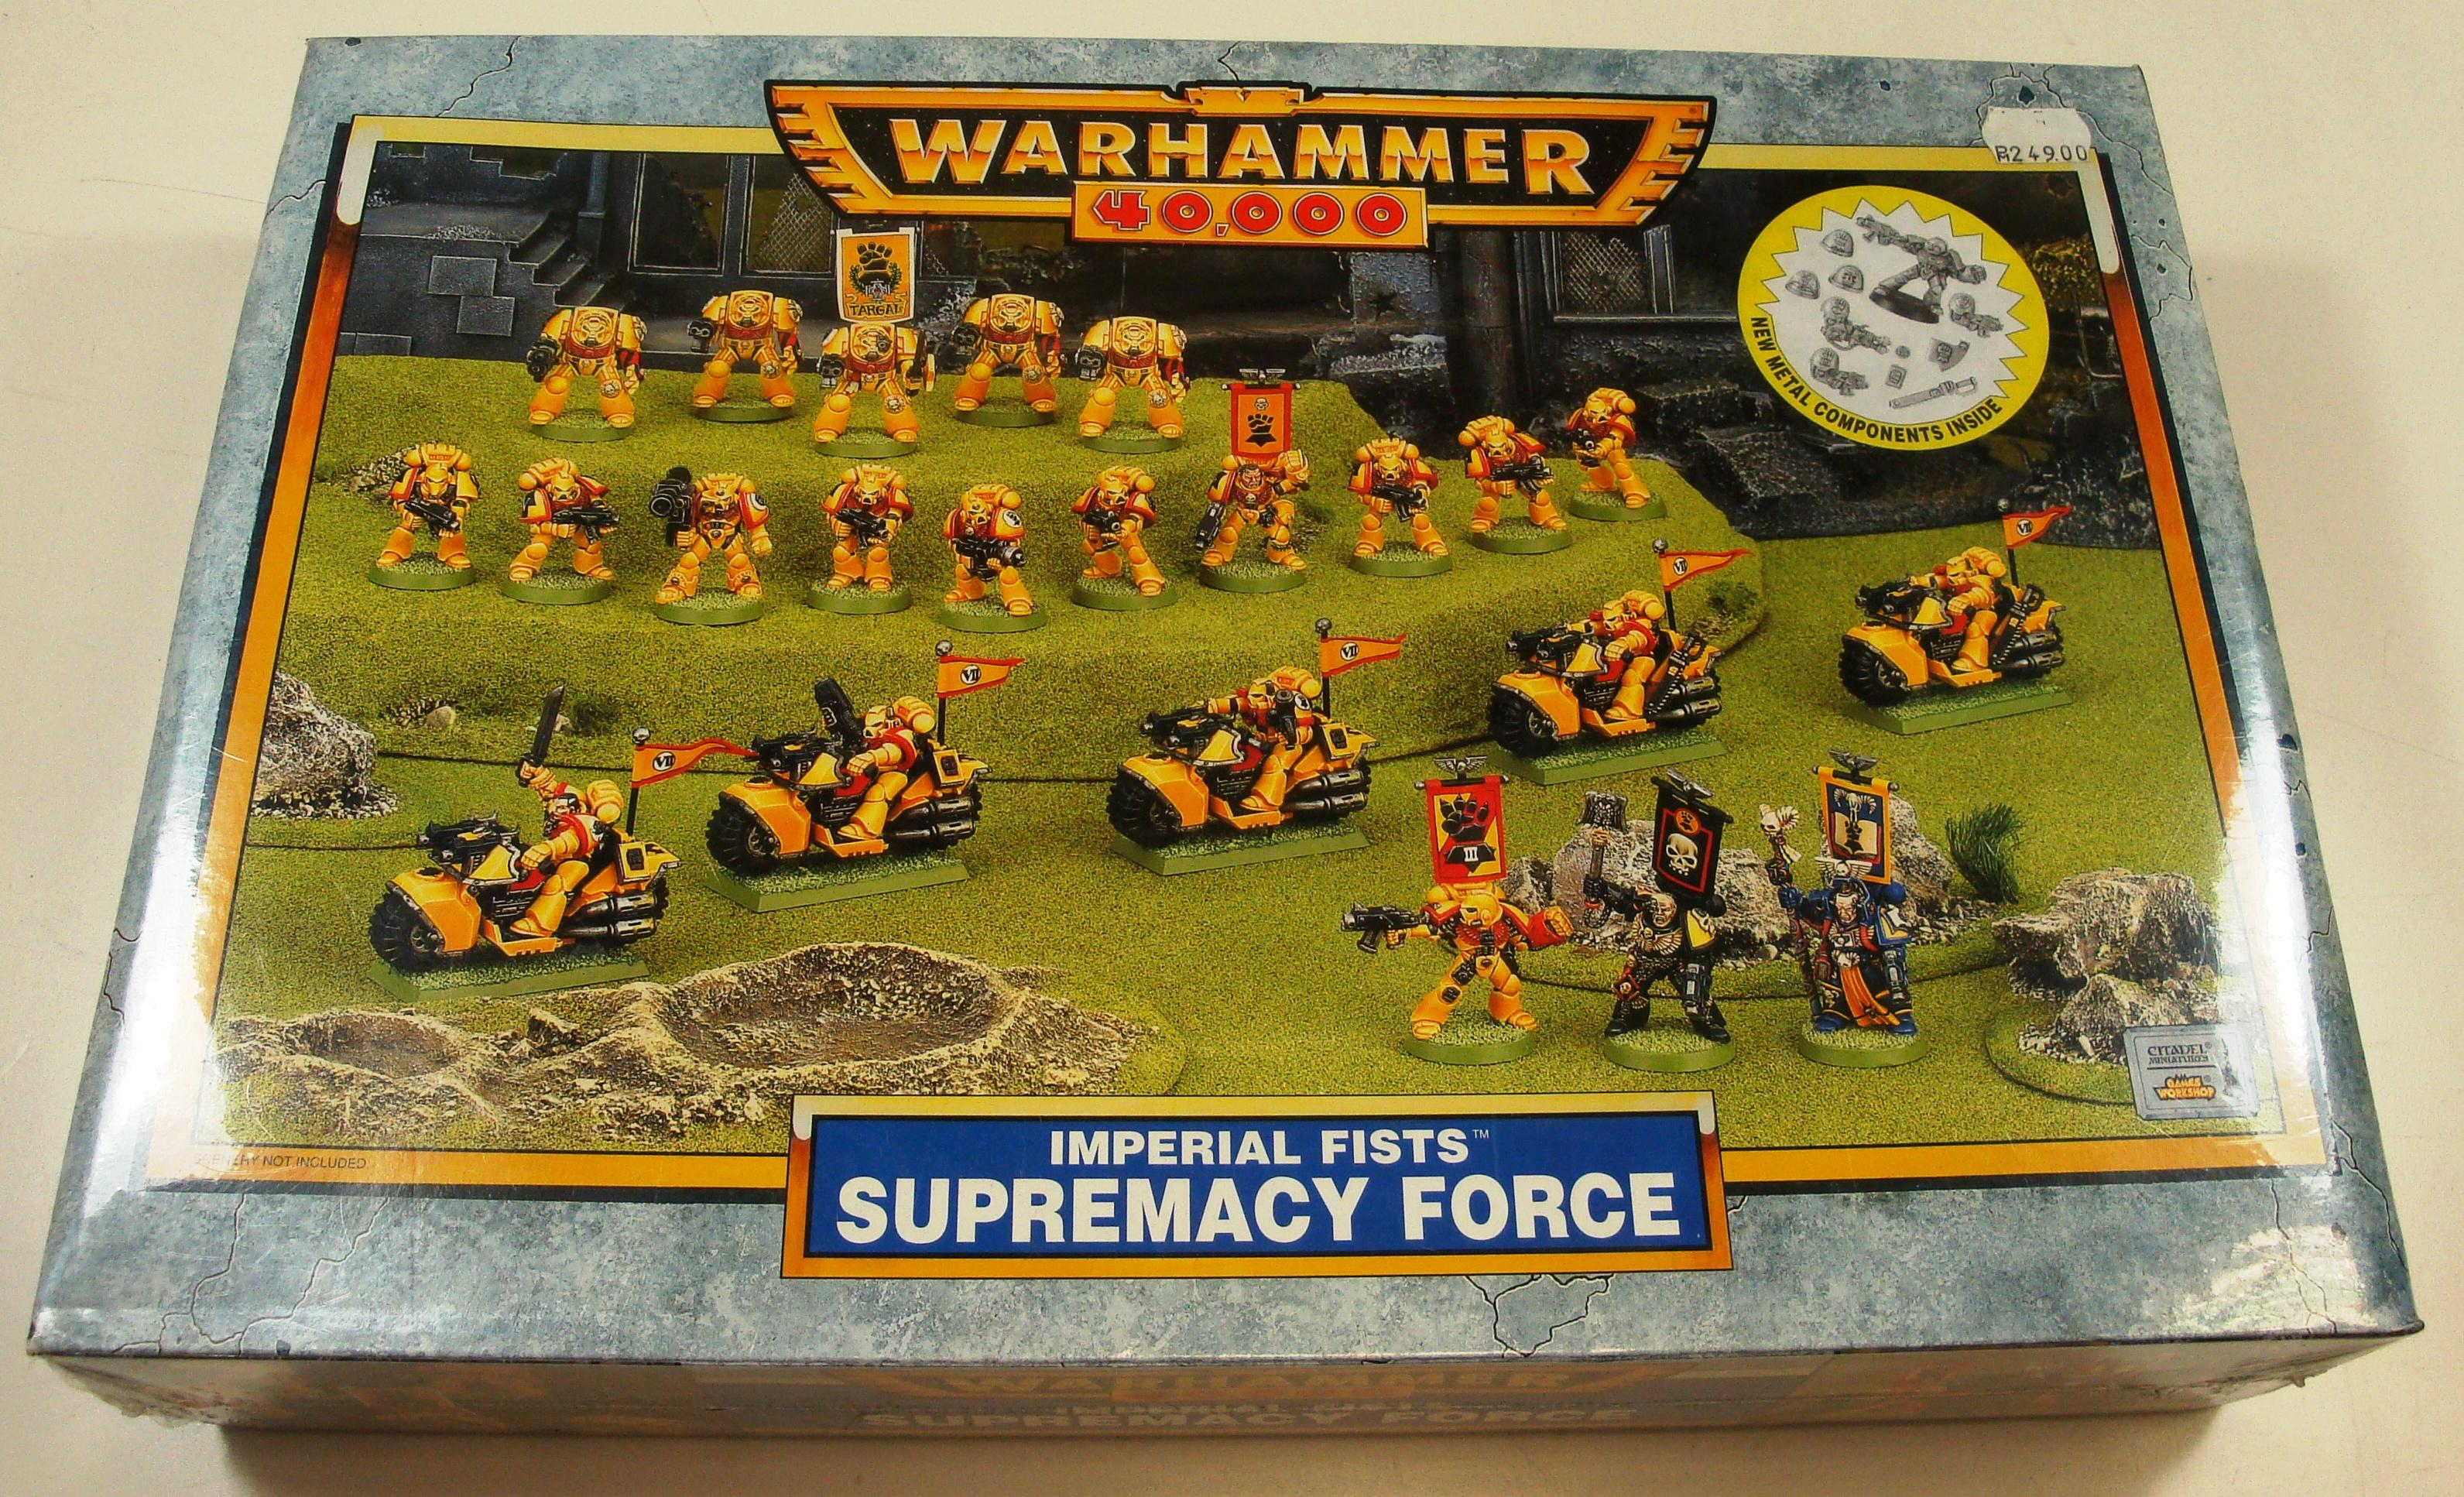 Adeptus Astartes, Army, Astartes, Blood Angels, Dreadnought, Force, Imperial Fists, Predator, Razorback, Rhino, Rogue Trader, Sale, Space Marines, Whirlwind